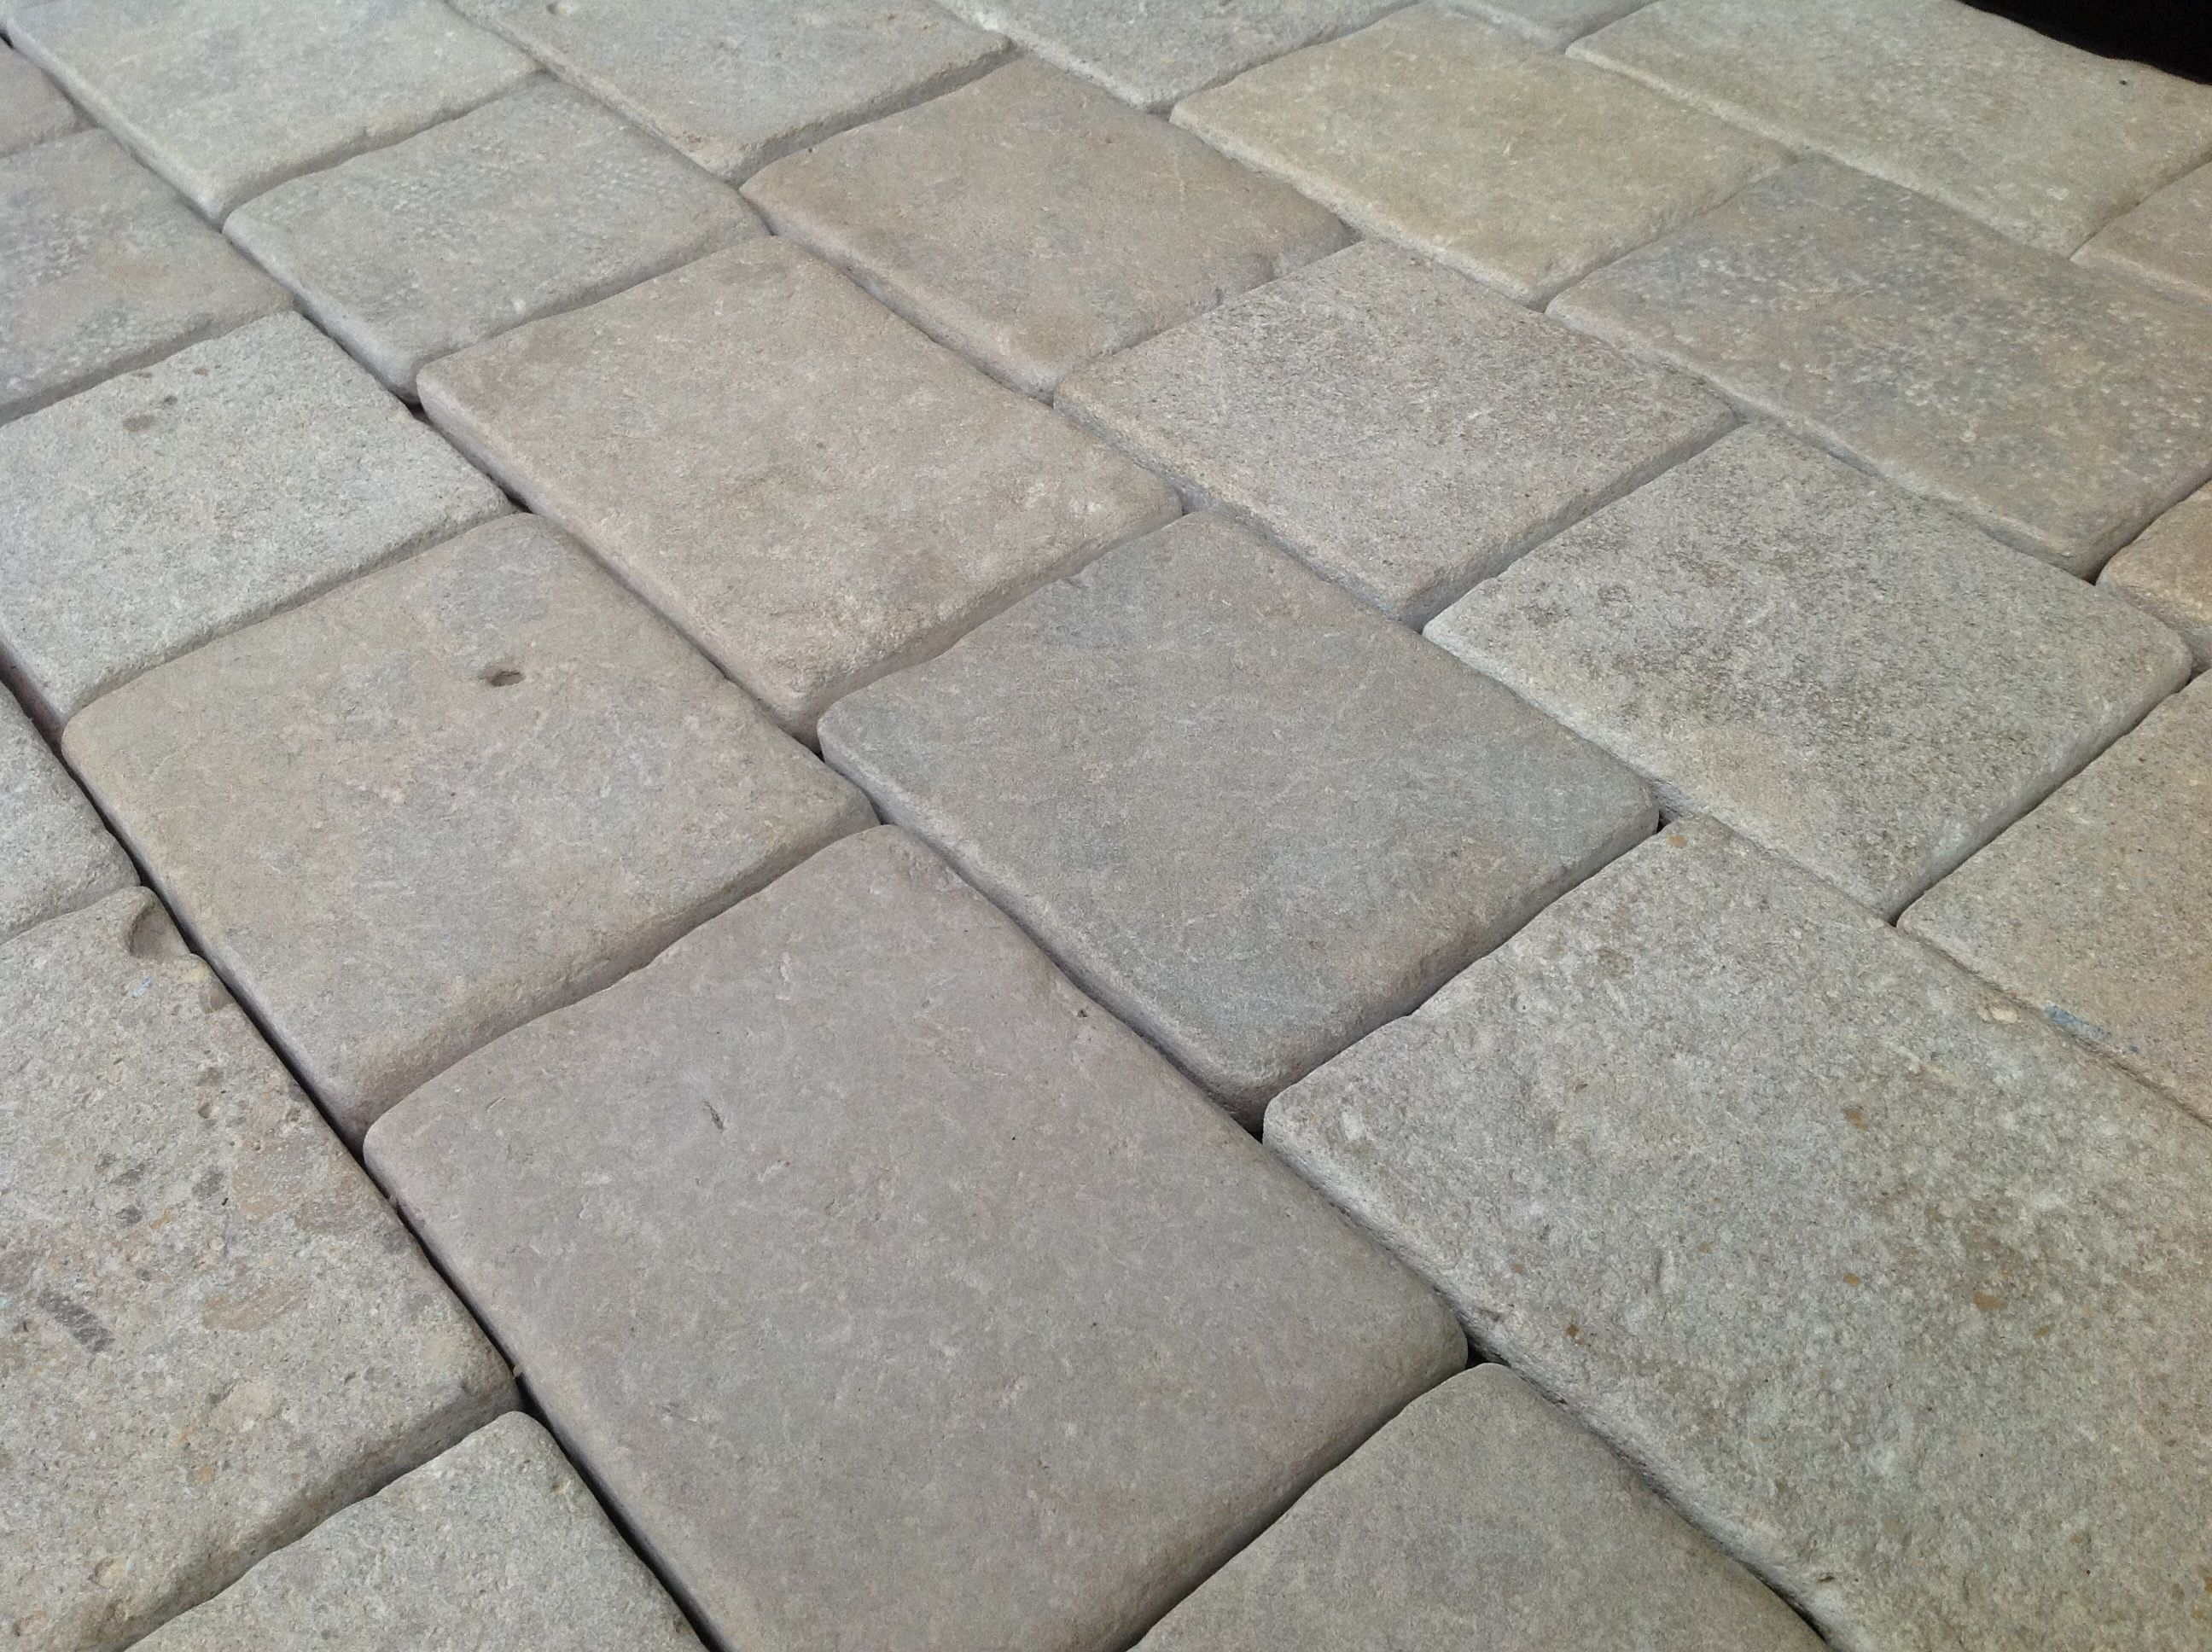 Beautiful Reclaimed Limestone Pavers For Interior And Exterior.  Www.naturalstoneconsulting.co.uk. Limestone PaversQuarry TilesCheckered  FloorsExterior